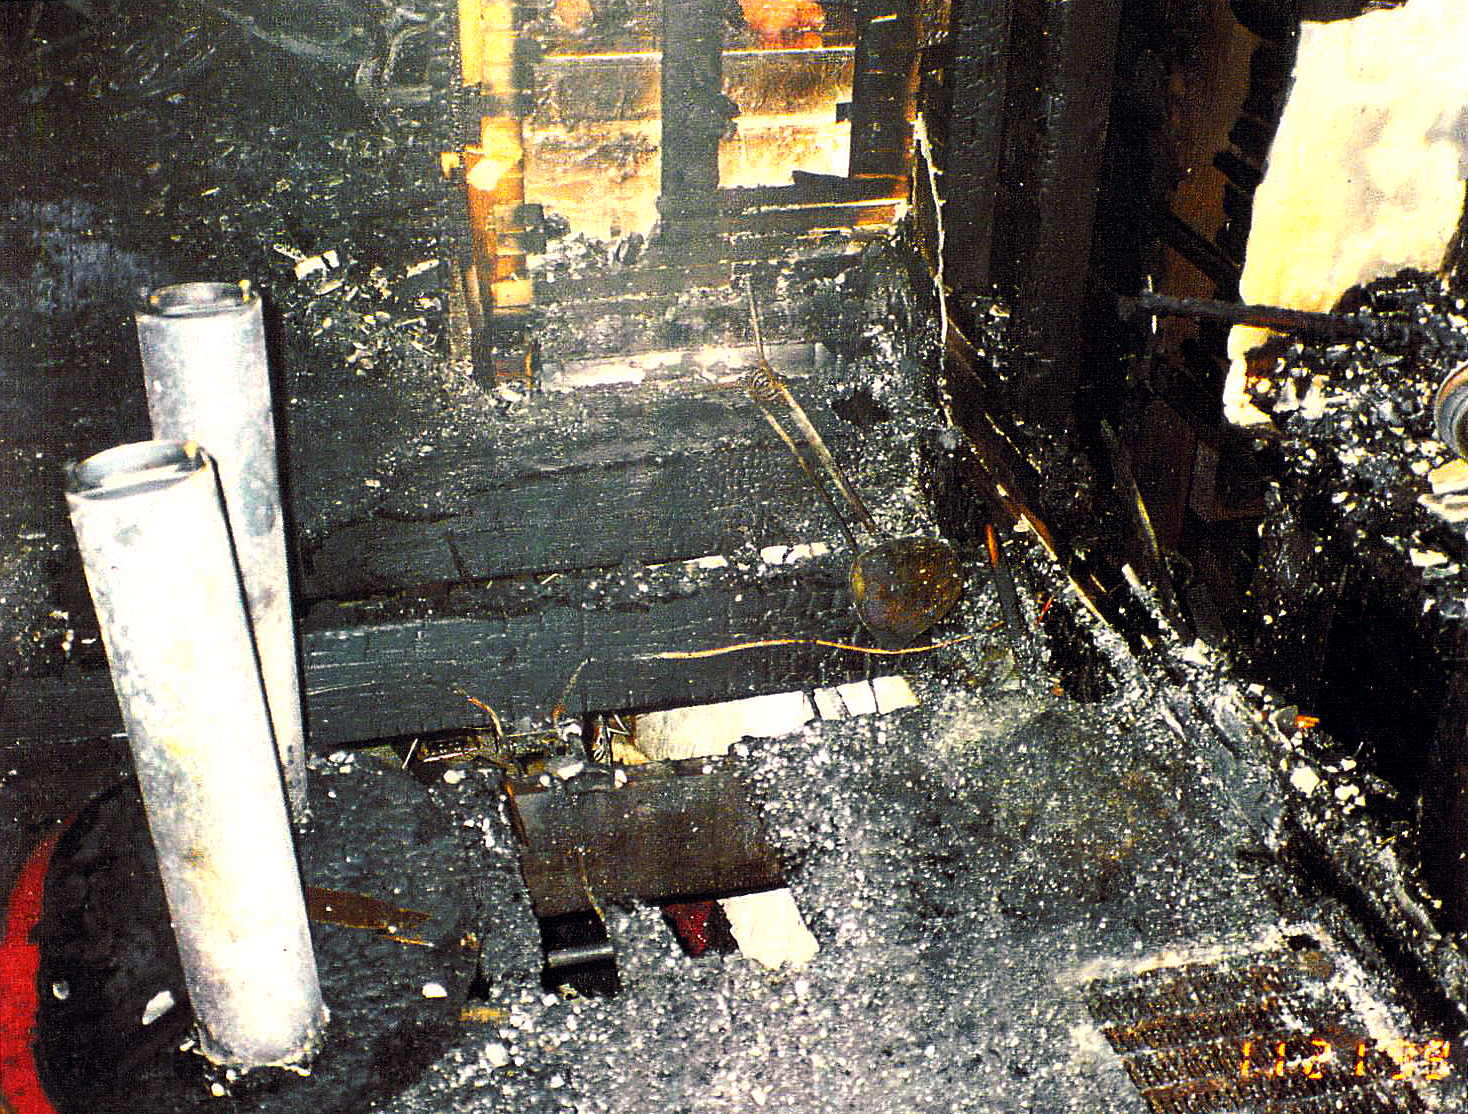 Angela-Garcia-ohio-arson-interior-damage-1488388594